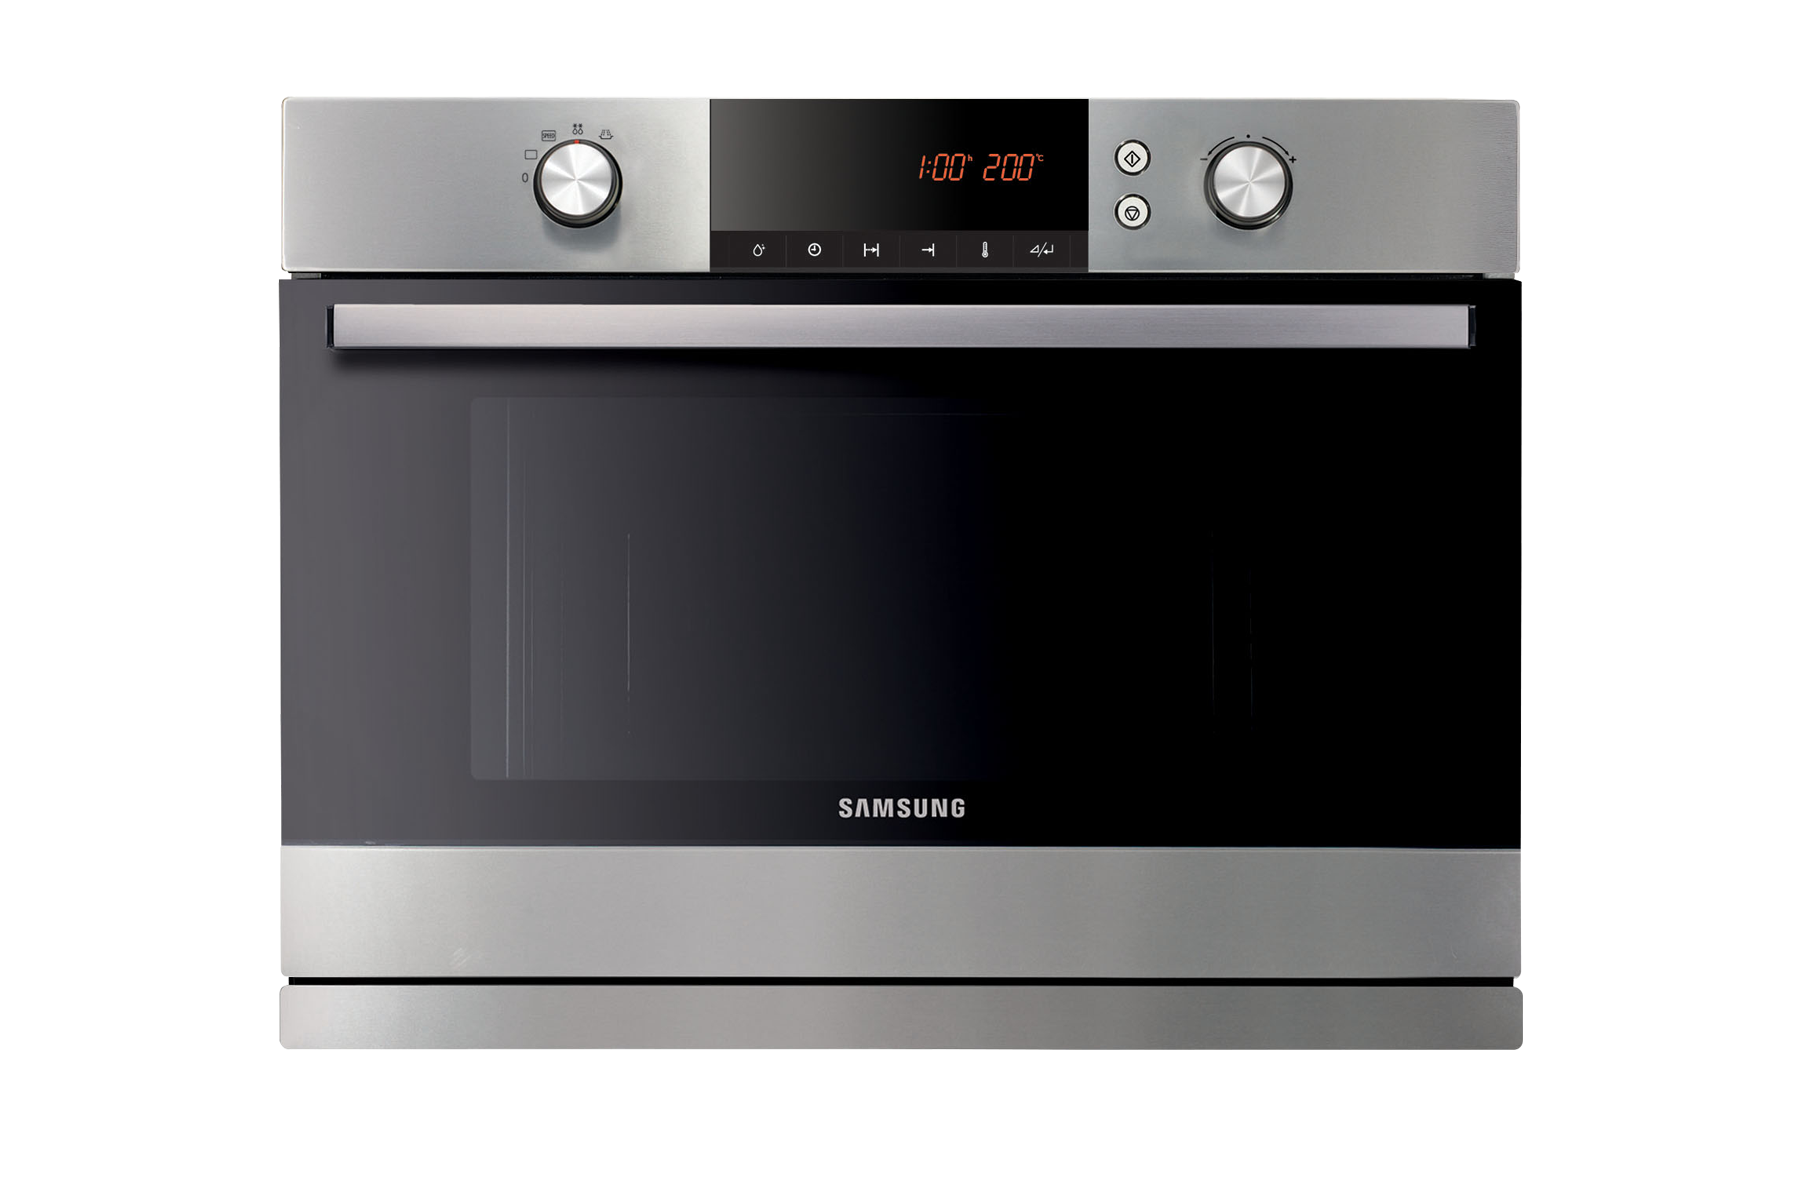 FQ115T001 Geo Compact Oven, 42L with Steam-cleaning